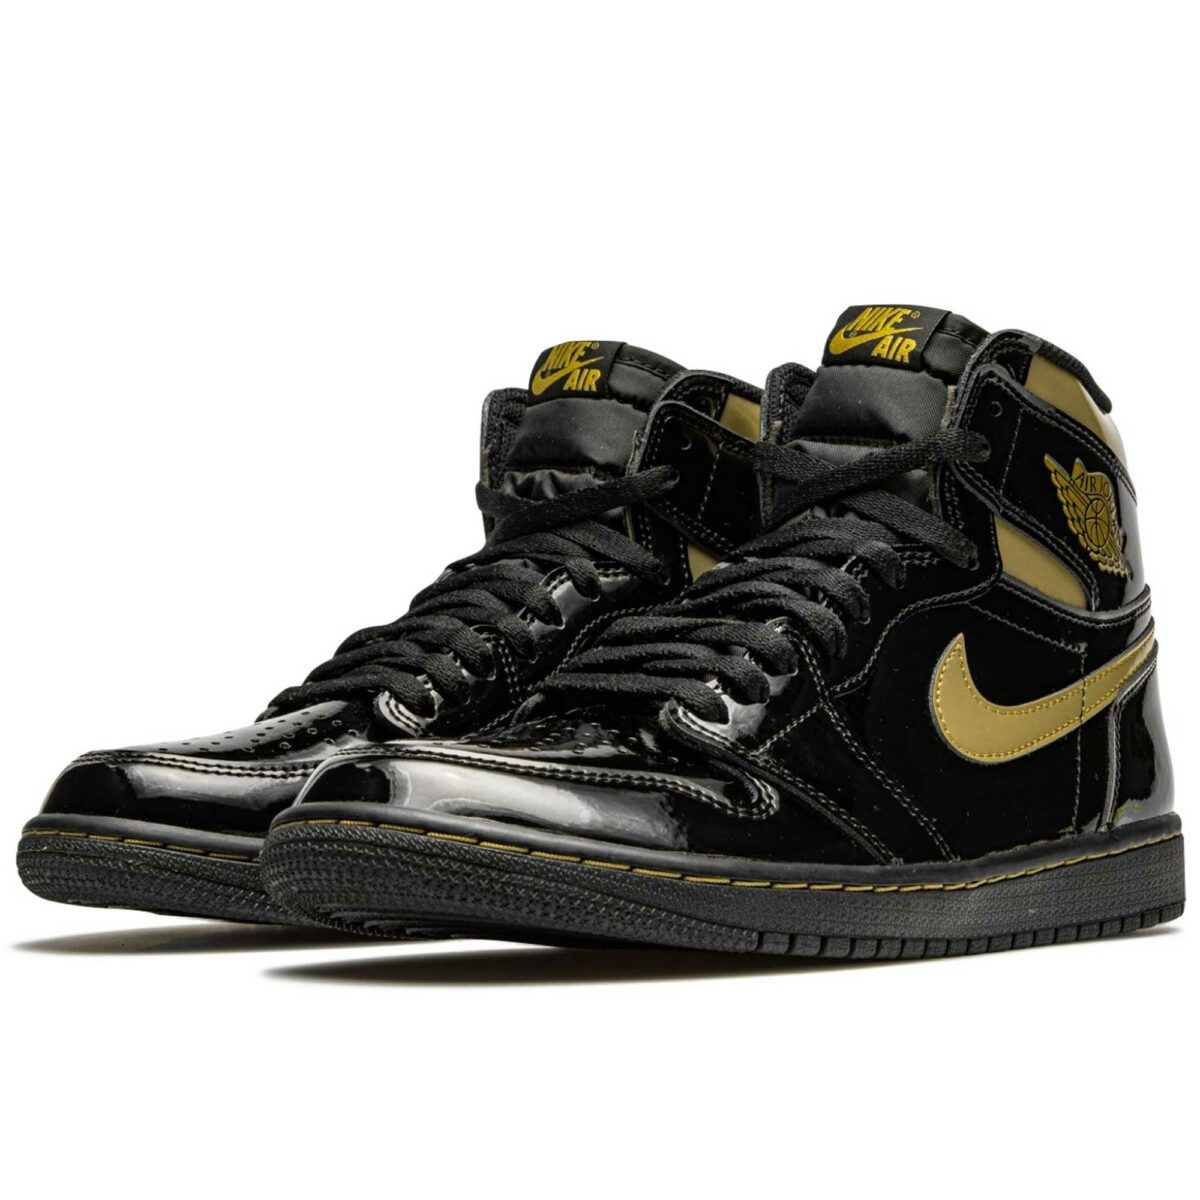 nike air Jordan 1 retro high og black metallic gold 555088_032 купить